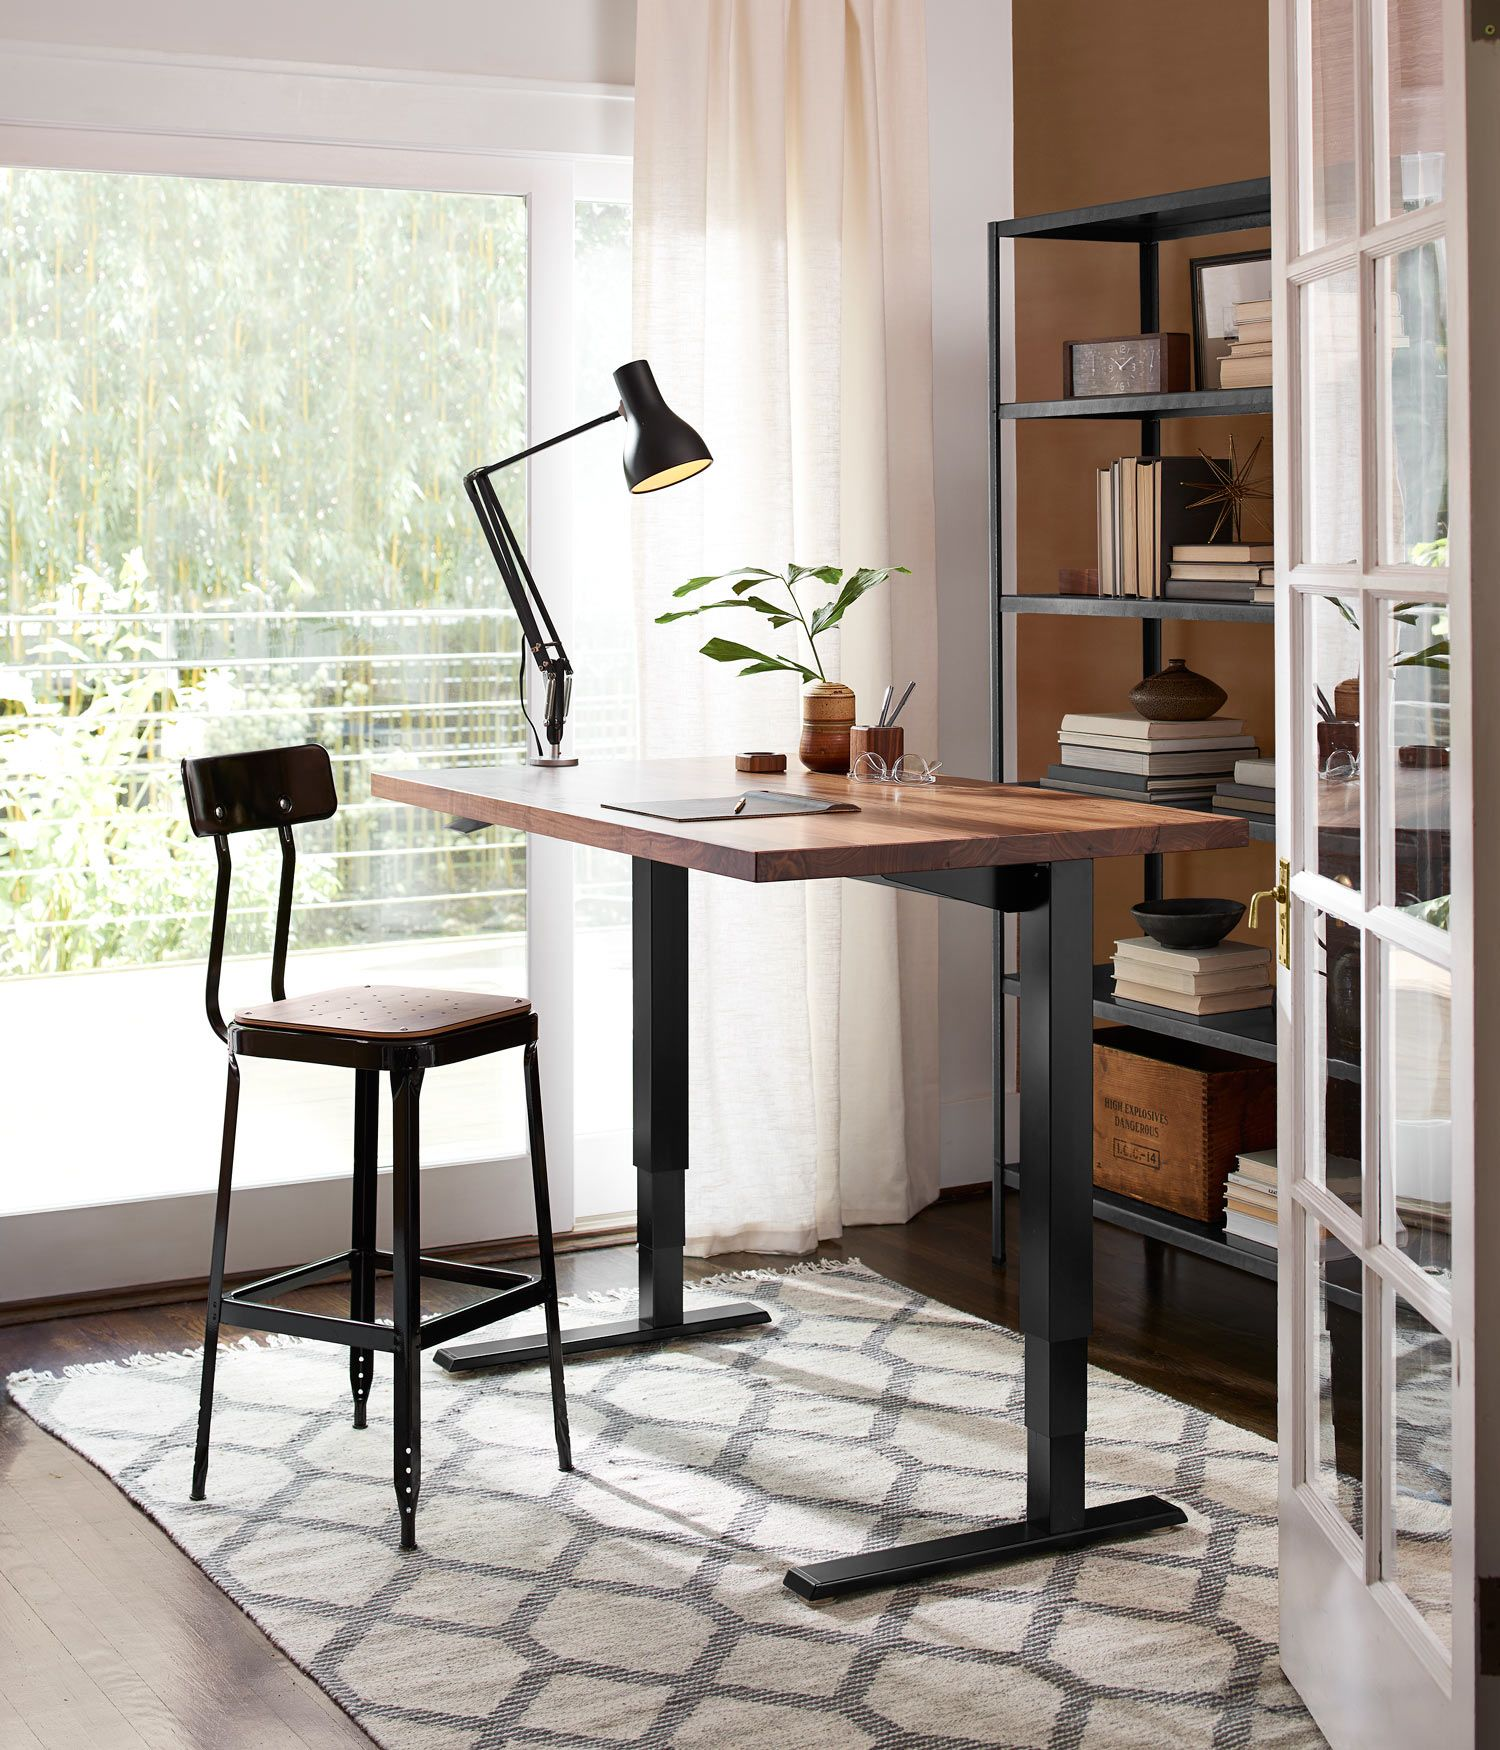 Humanscale Sit Stand Desk Black with Walnut